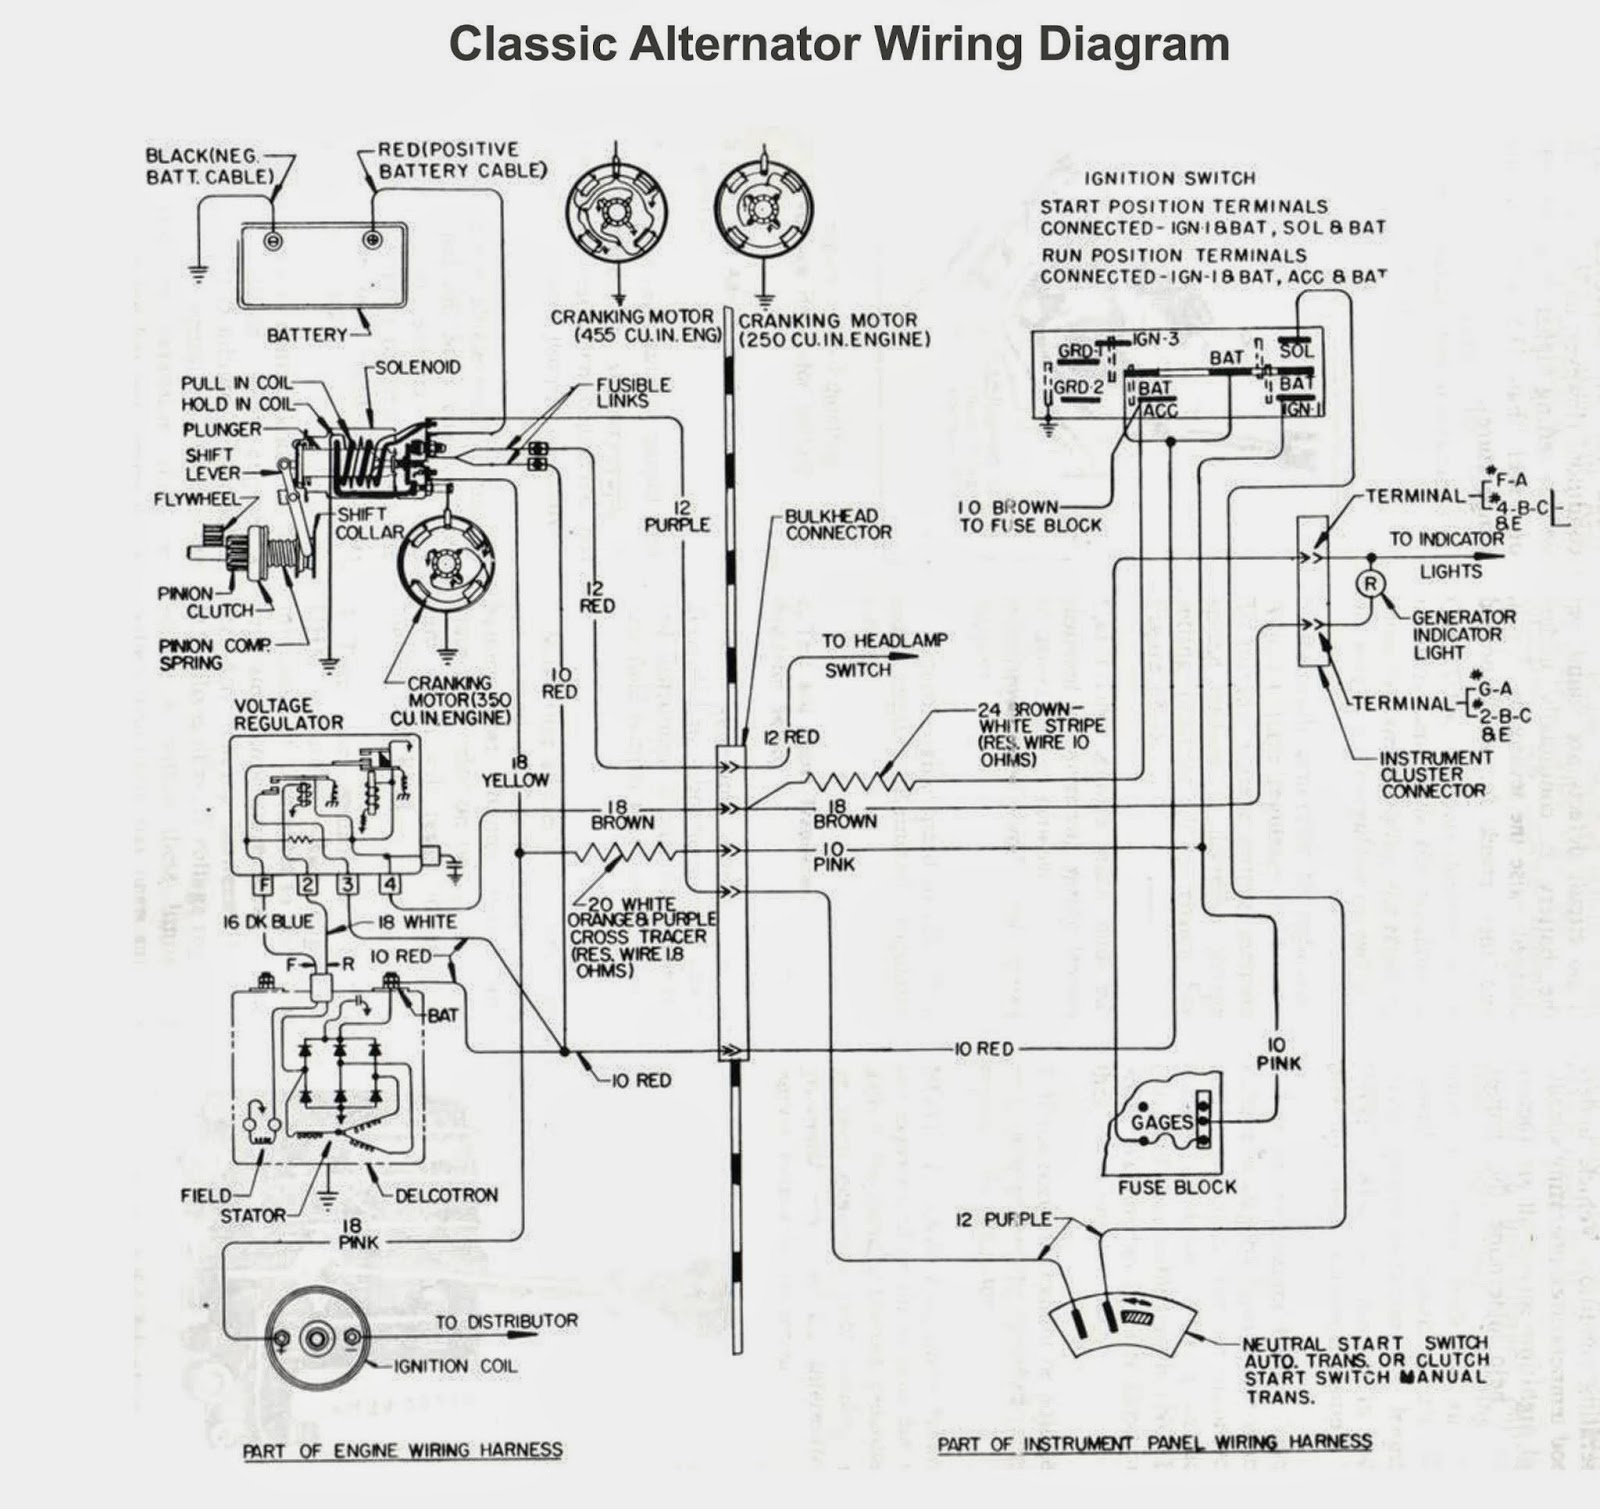 car alternator home generator wire diagram   42 wiring diagram images